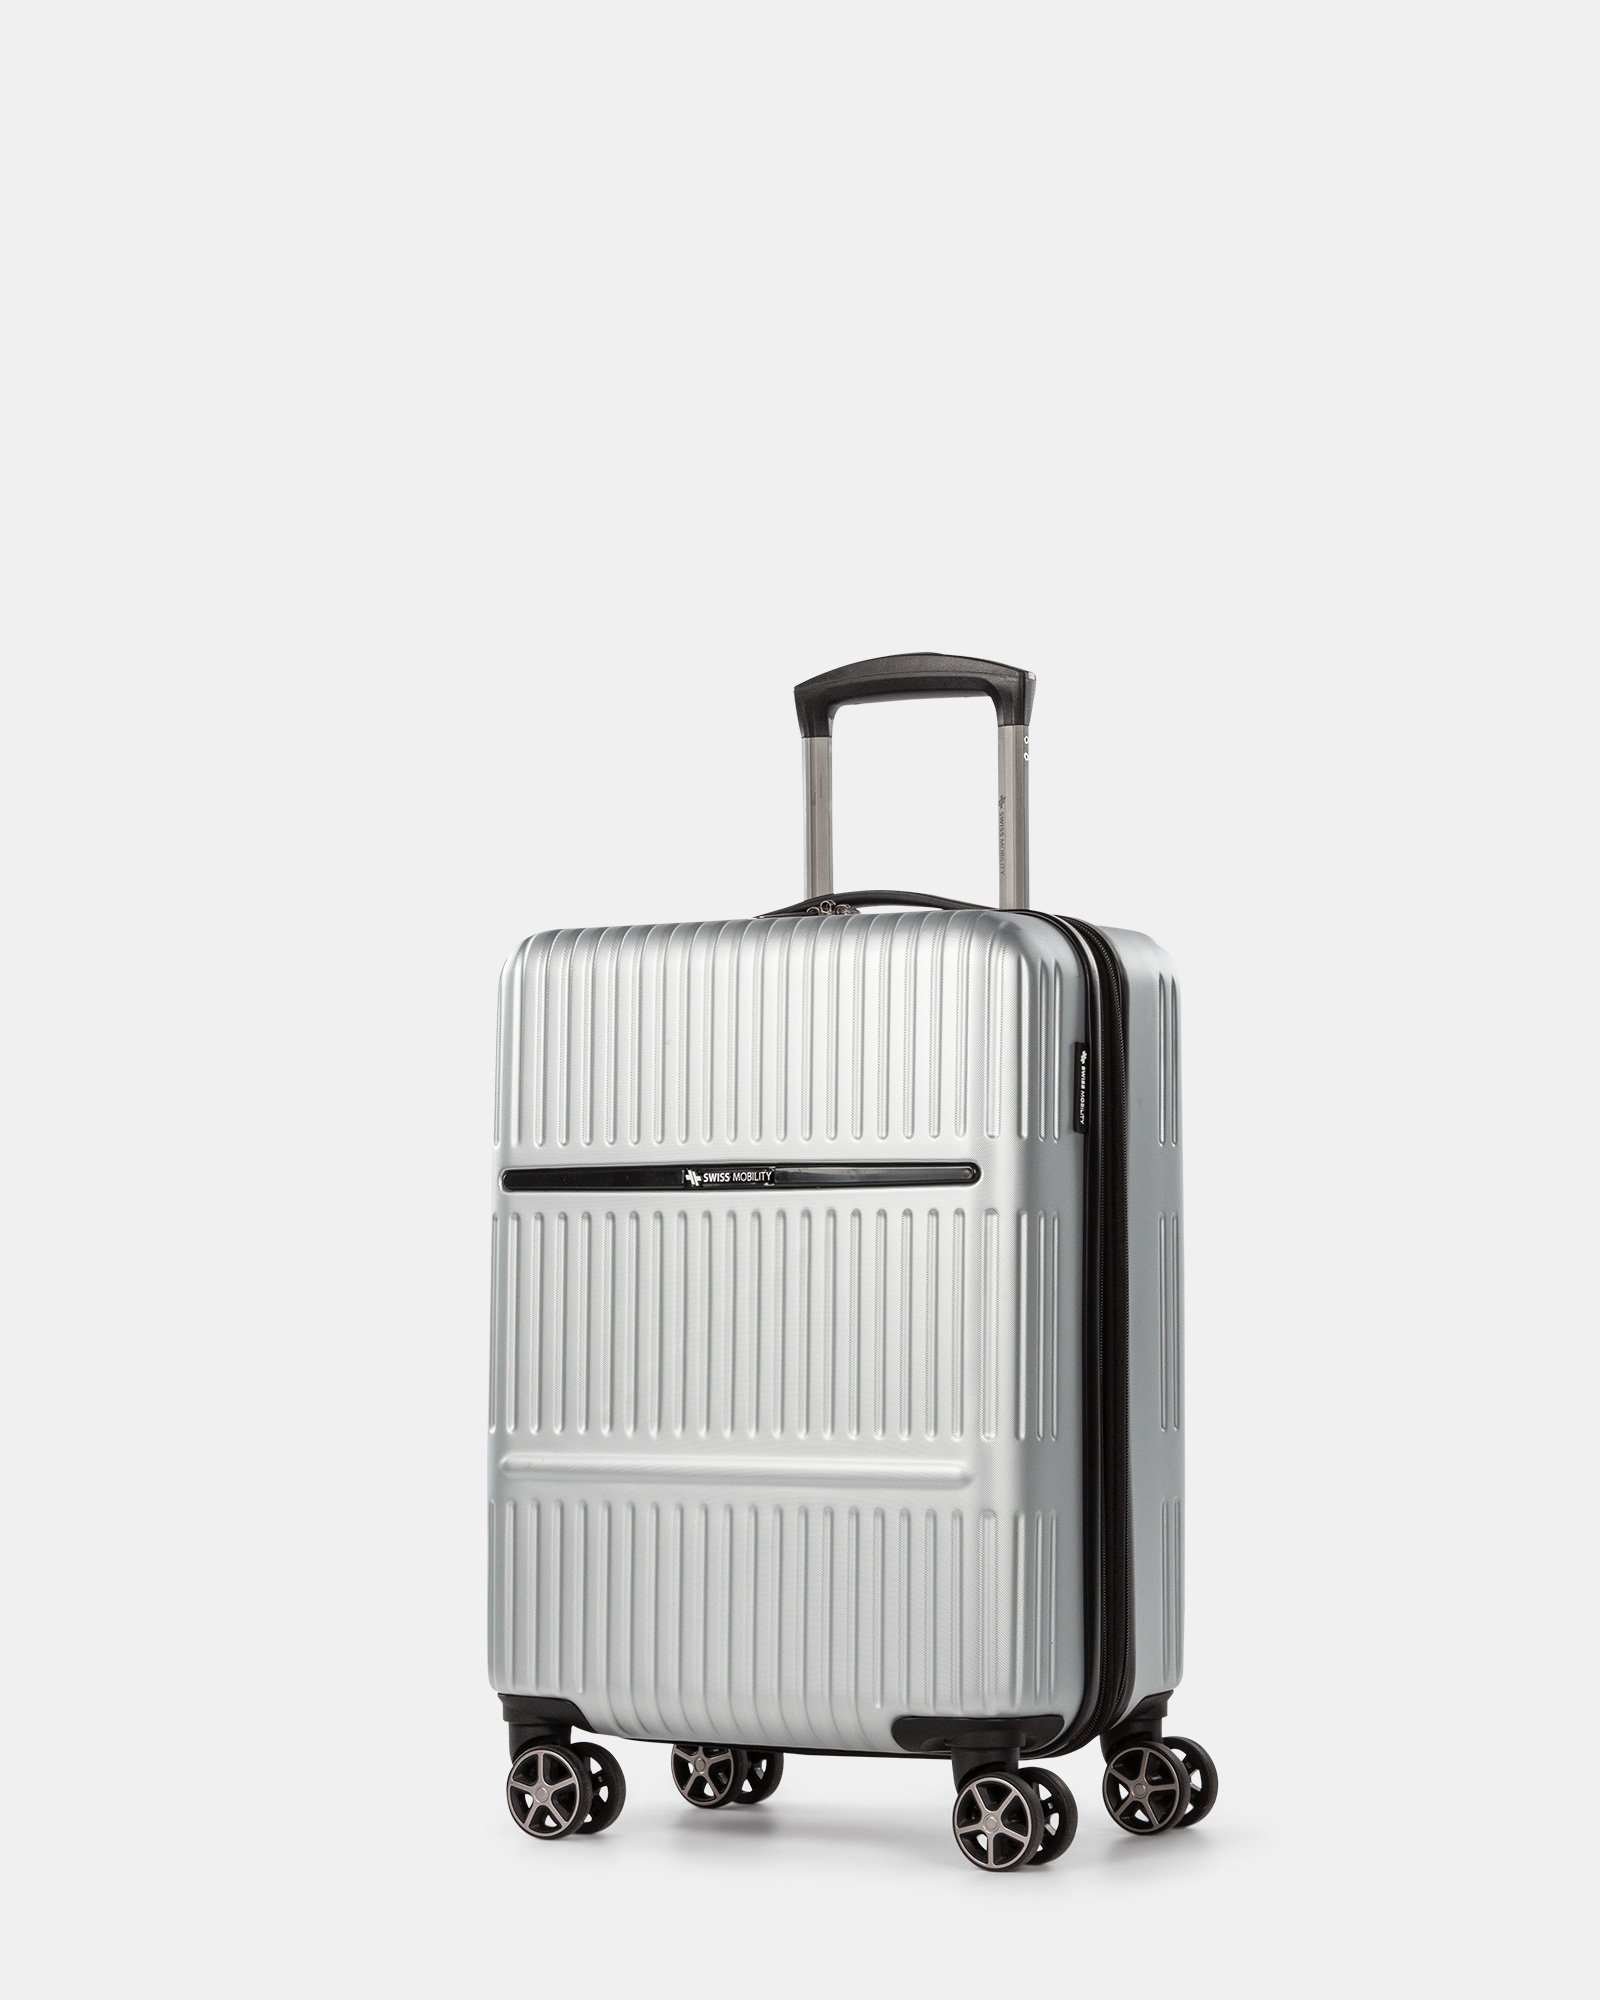 Highway-Hardside Carry-on - Swiss Mobility - Zoom